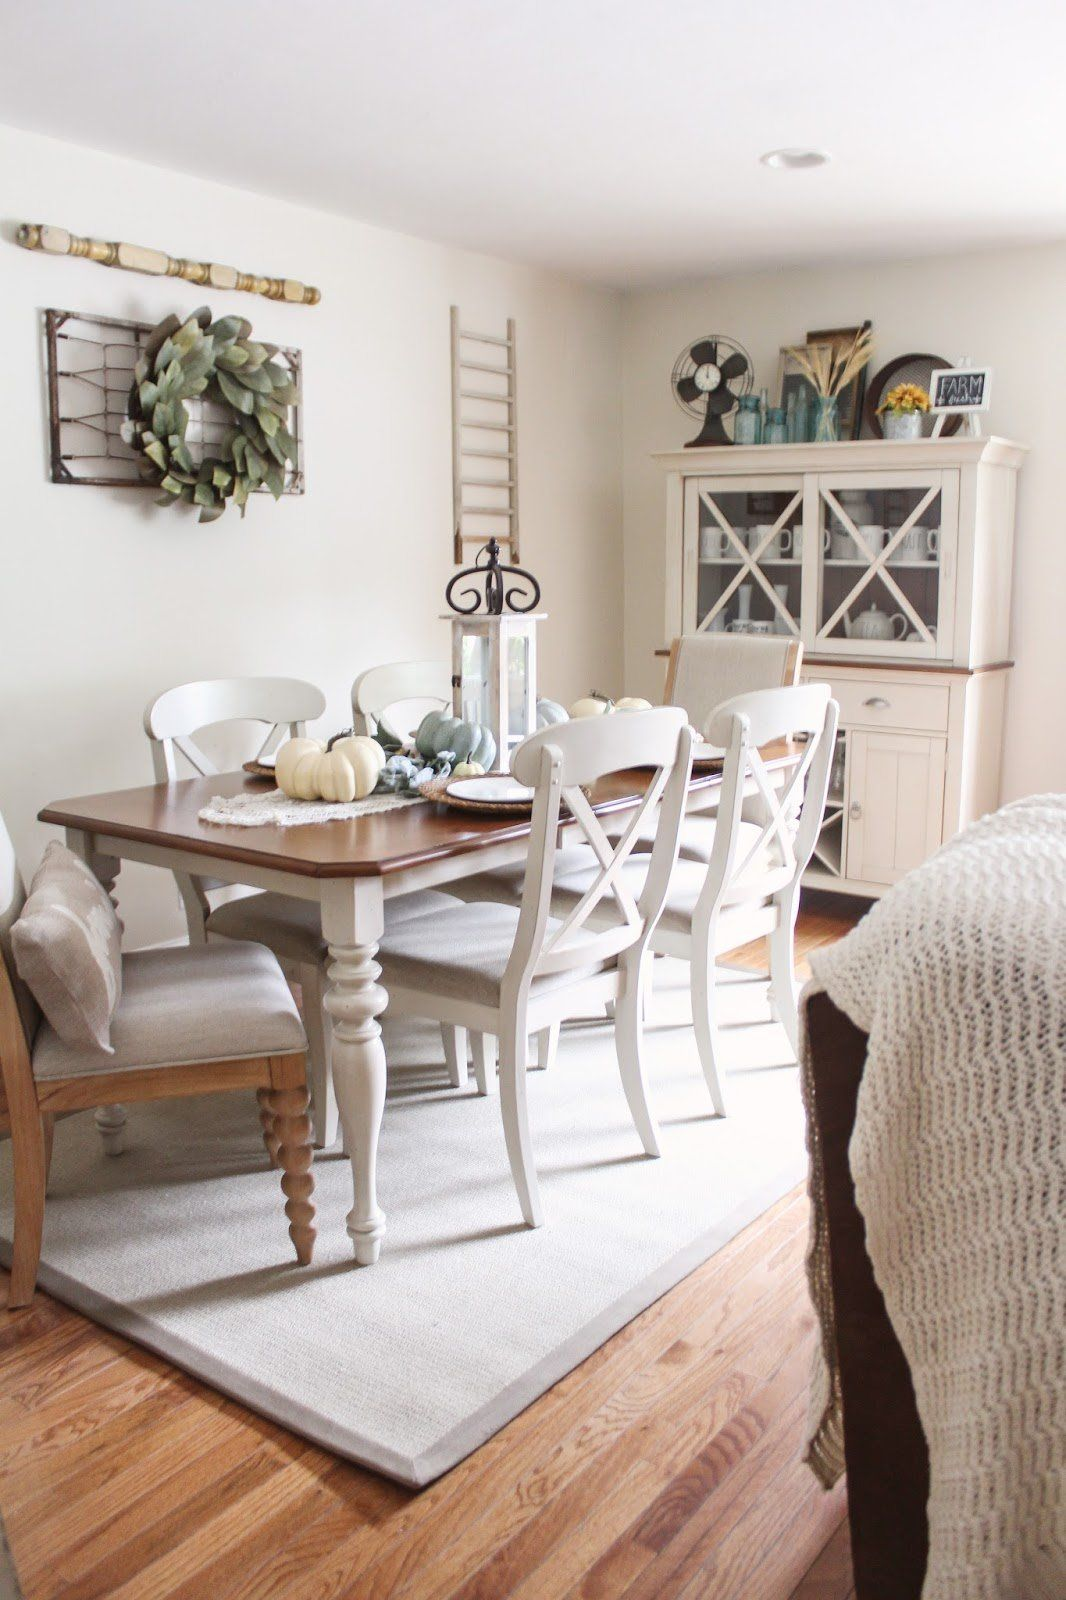 Sagamore 7 Pc Dining Set Dining Sets Raymour And Flanigan Furniture Mattresses Farmhouse Dining Room Table Farmhouse Dining Rooms Decor Farmhouse Style Dining Room #raymour #flanigan #living #room #sets